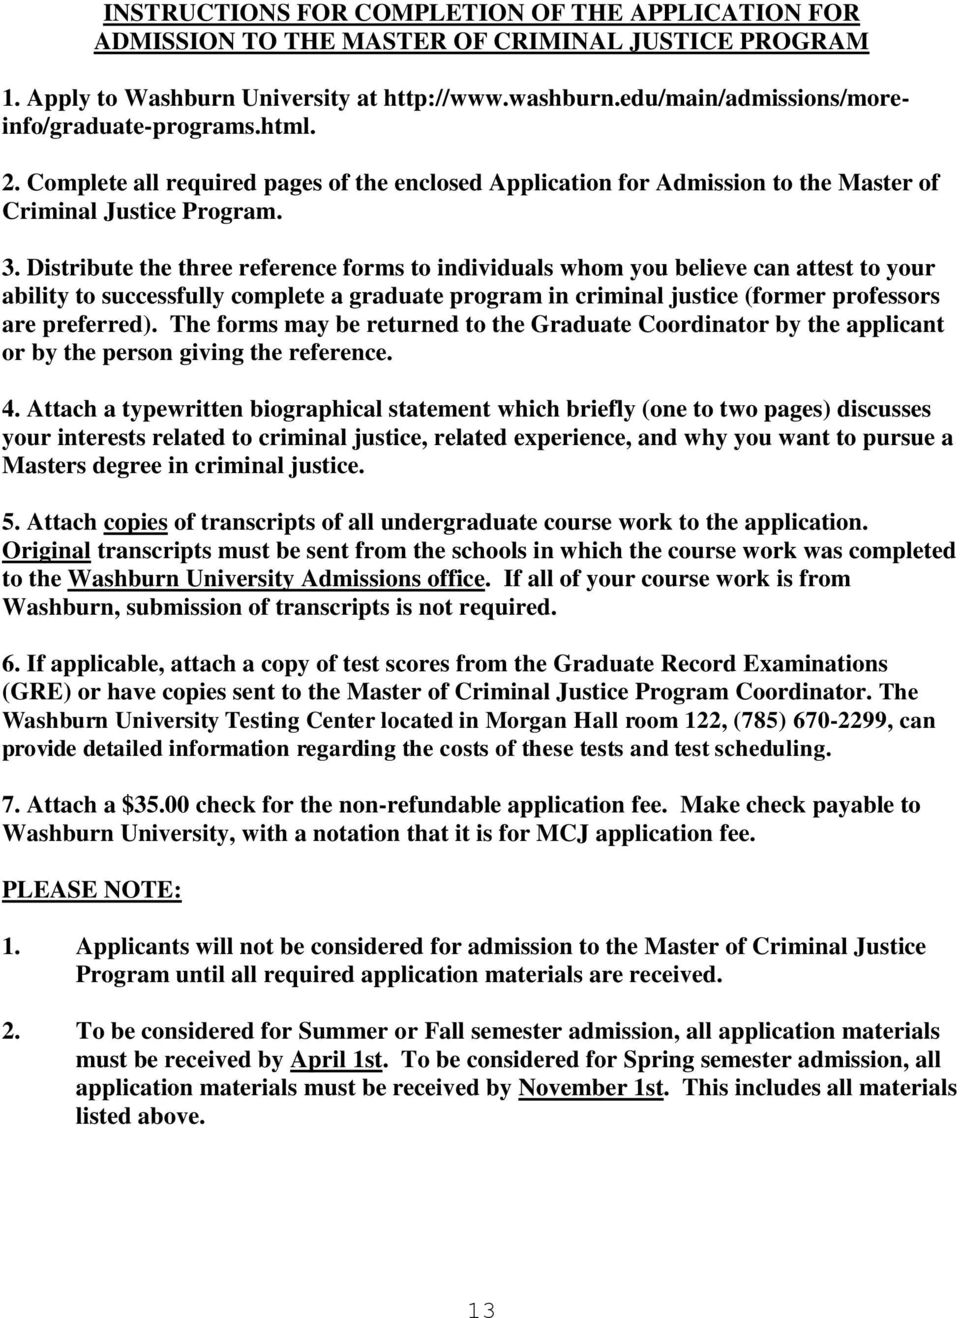 Distribute the three reference forms to individuals whom you believe can attest to your ability to successfully complete a graduate program in criminal justice (former professors are preferred).